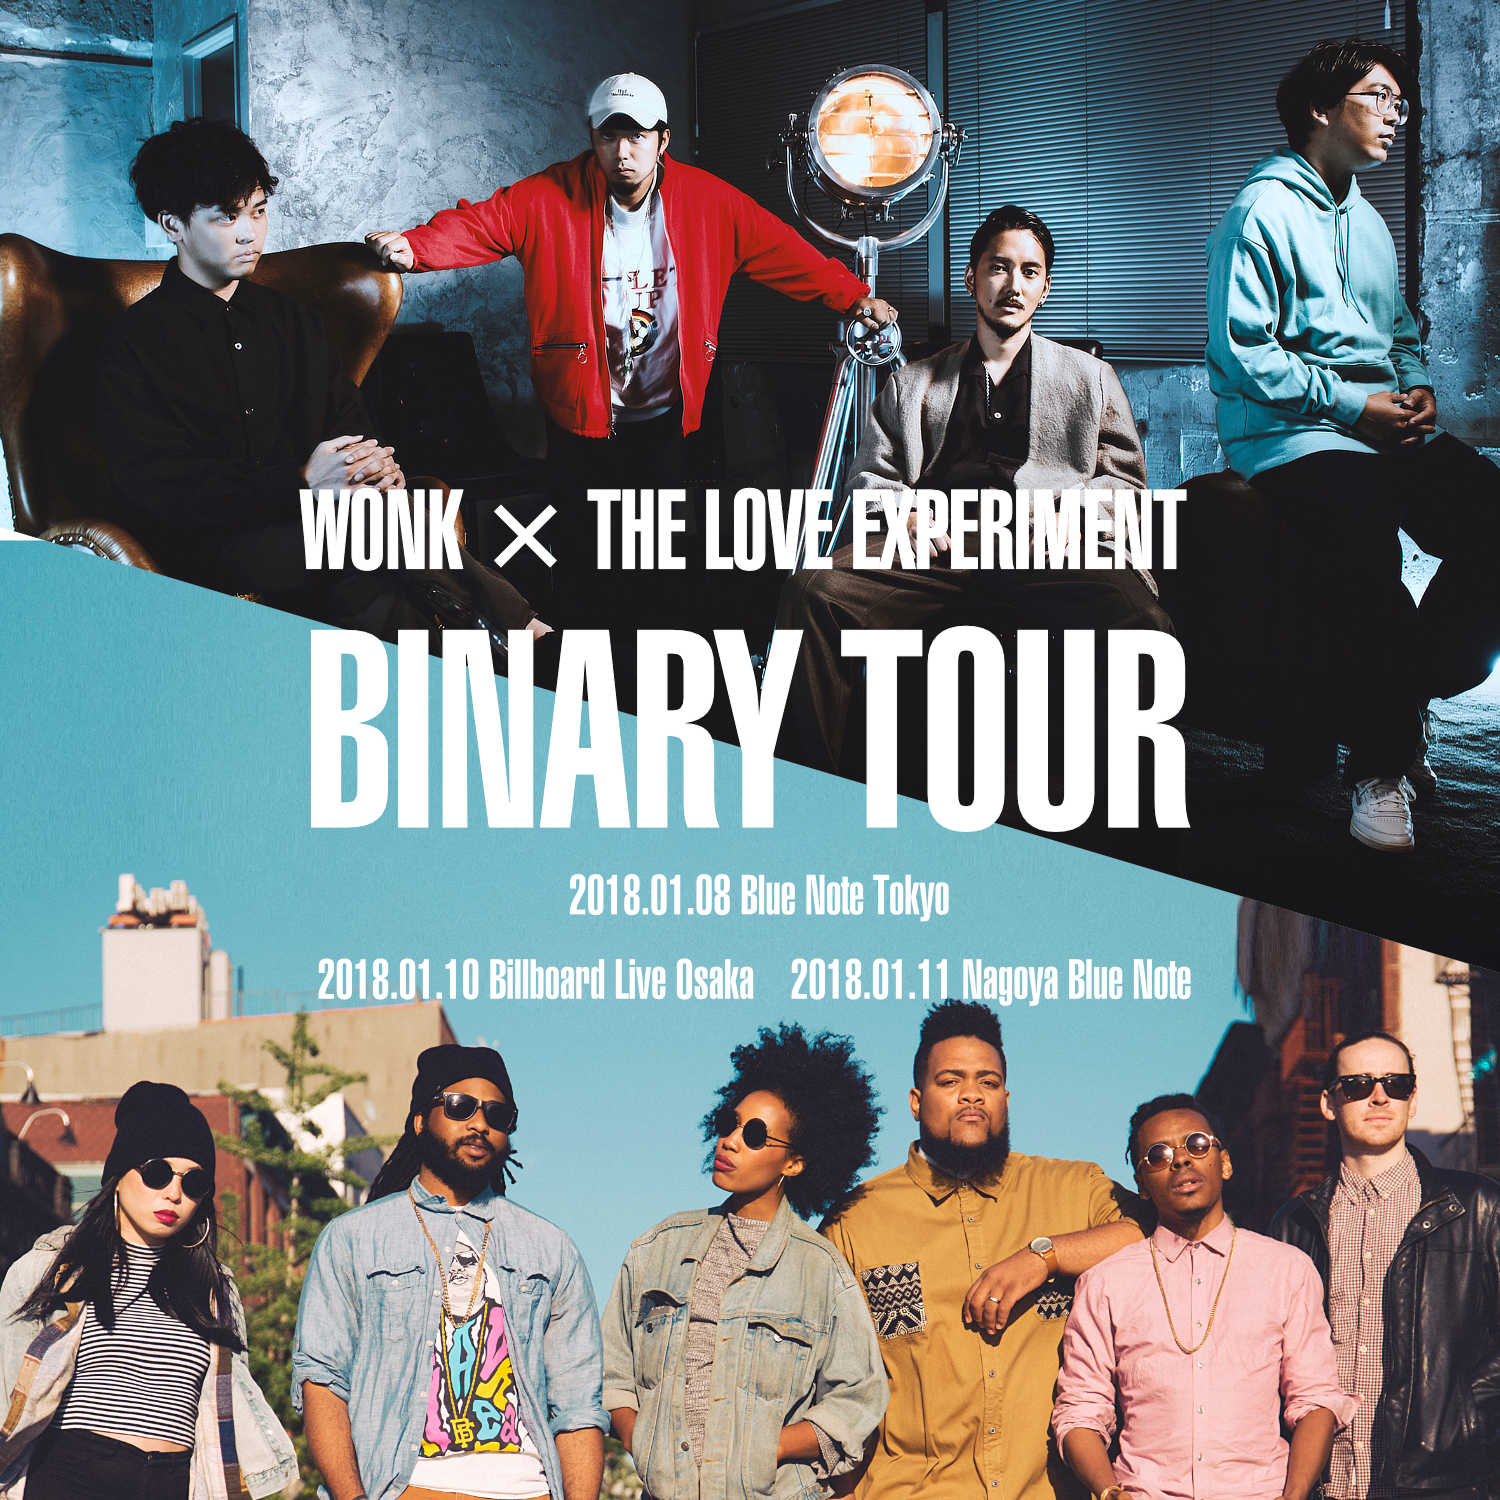 BINARY TOUR VISUAL